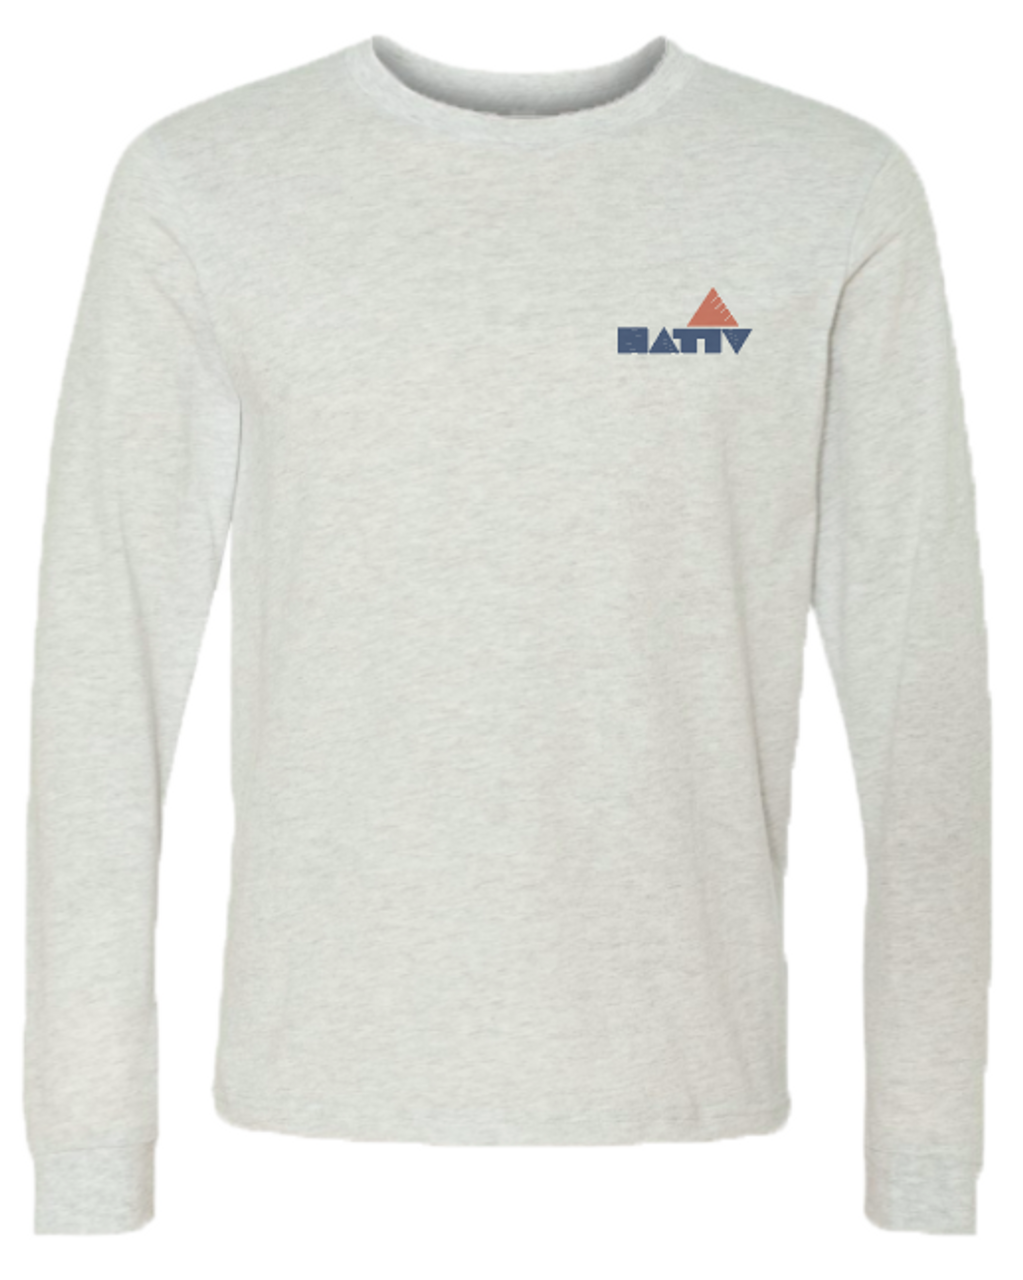 Nativ Geo Long Sleeve